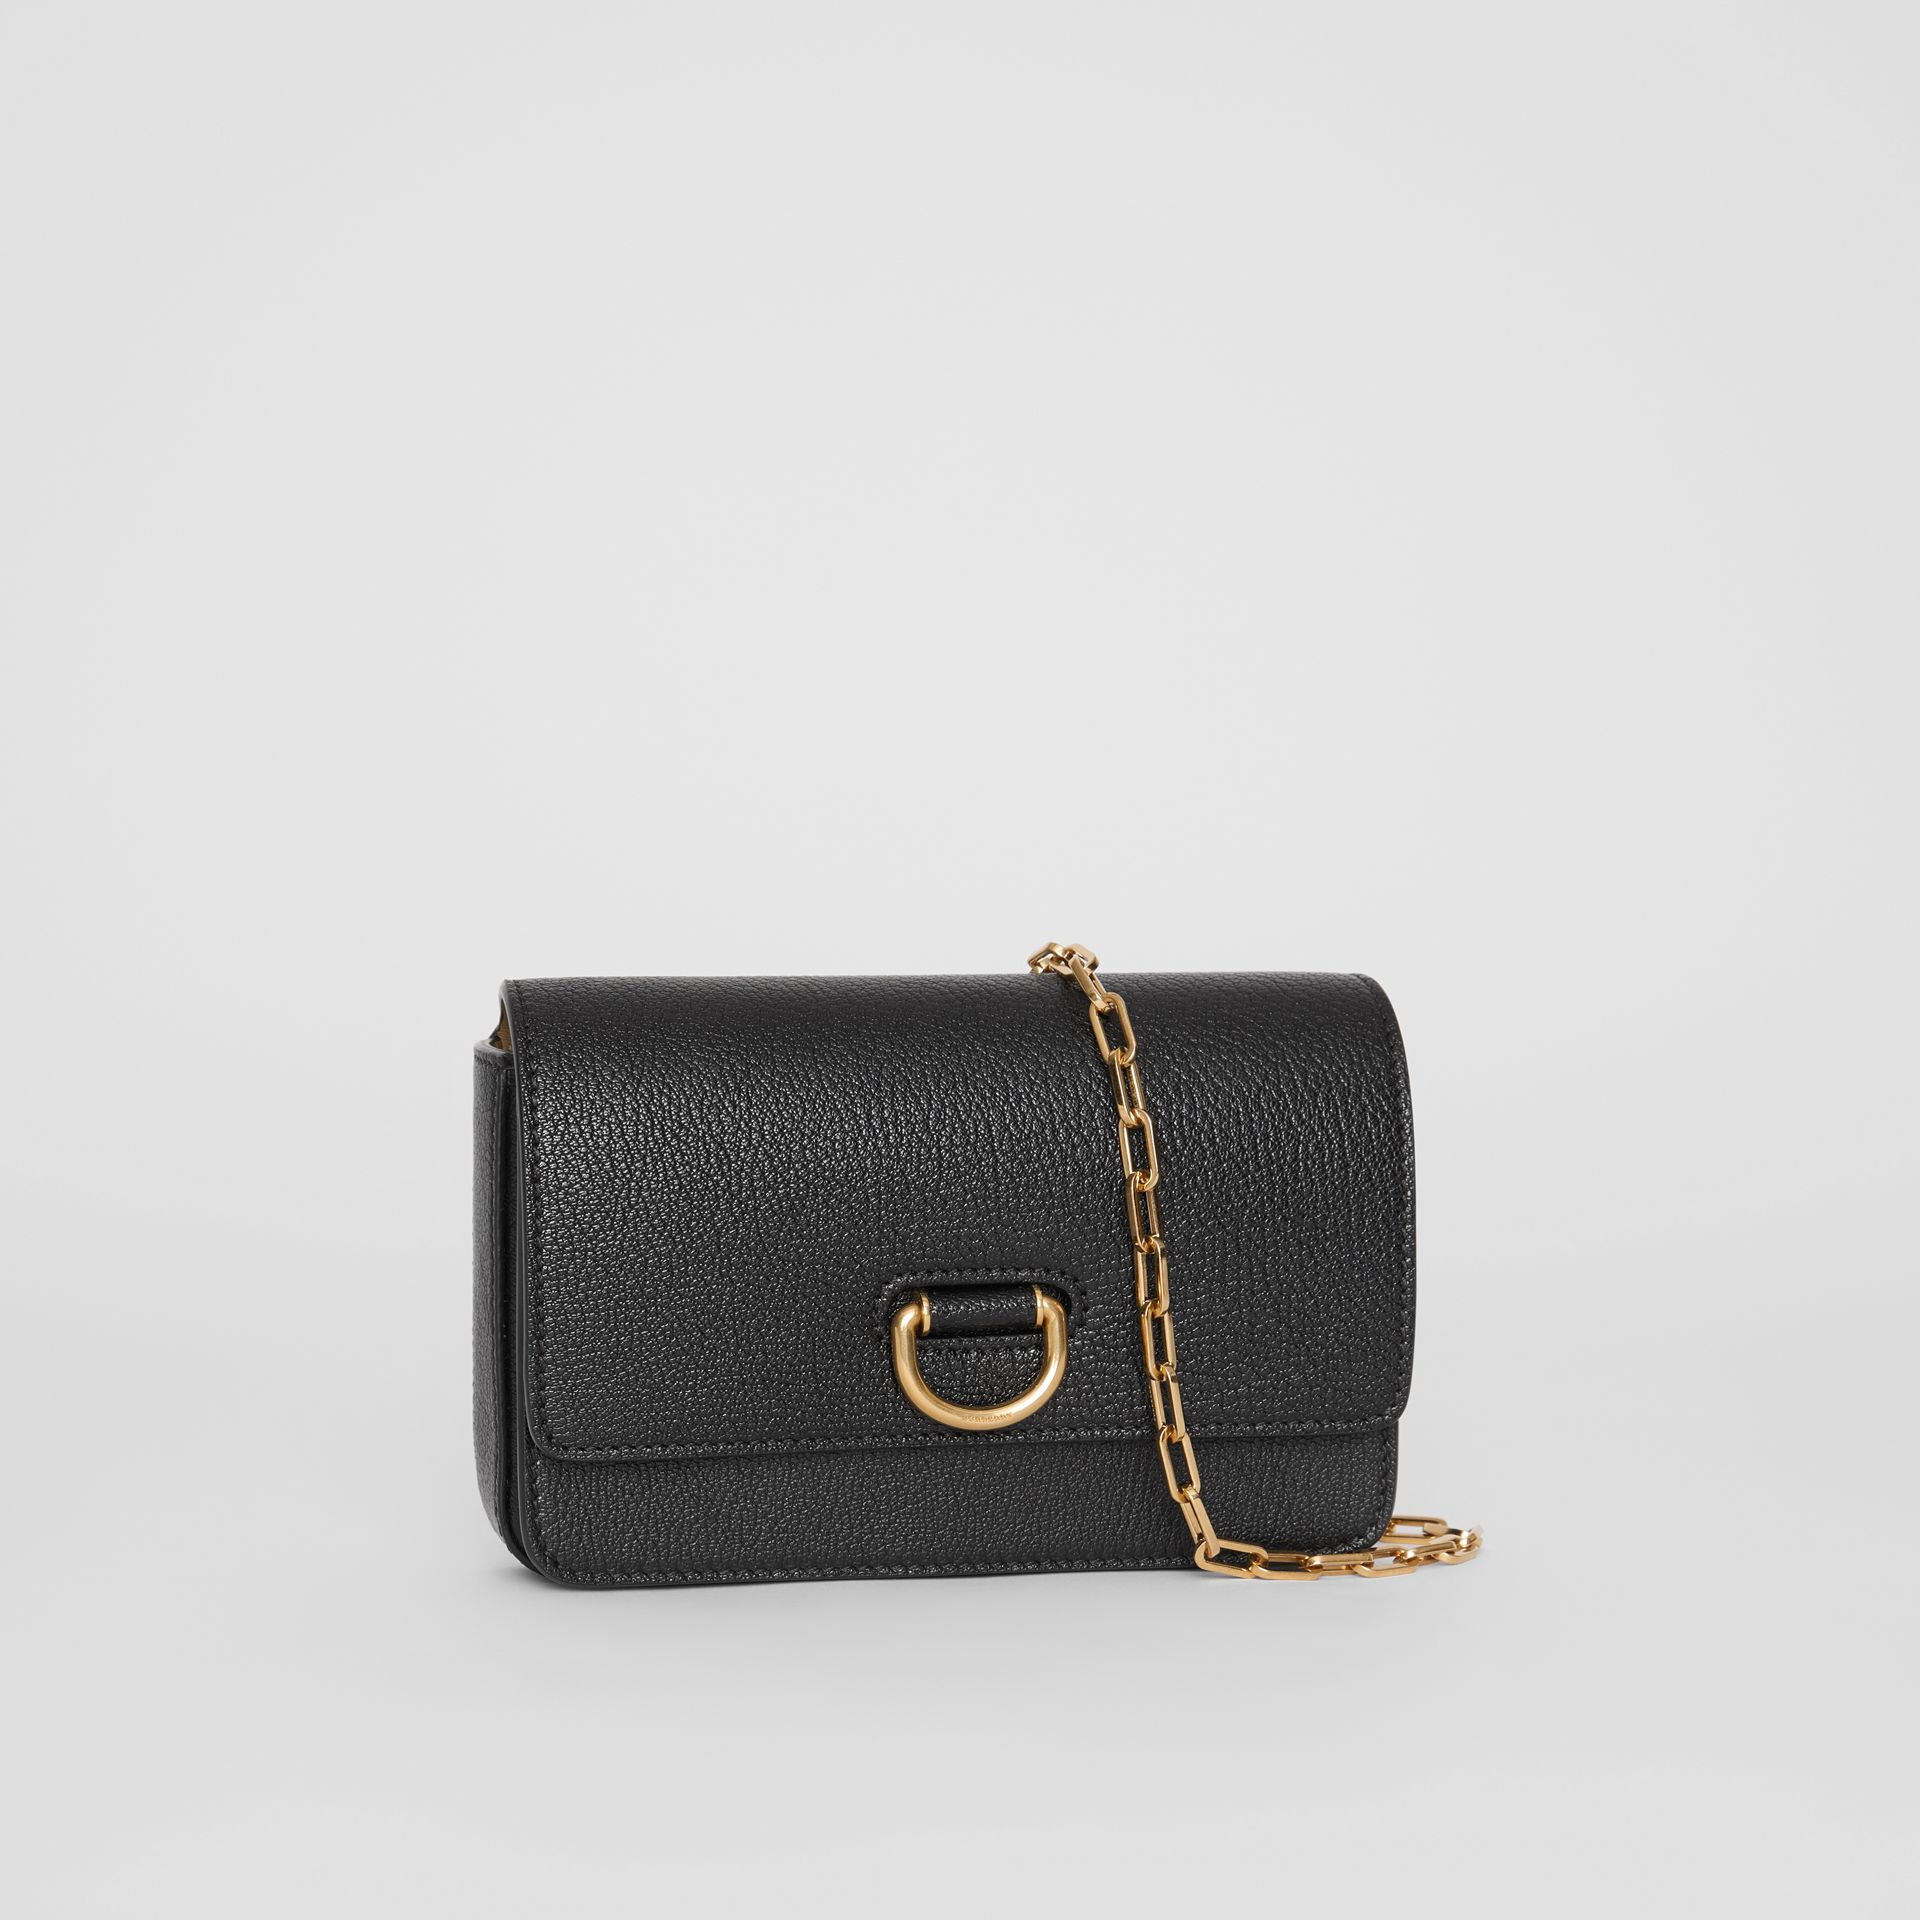 Mini sac The D-ring en cuir (Noir) - Femme | Burberry Canada - photo de la galerie 5